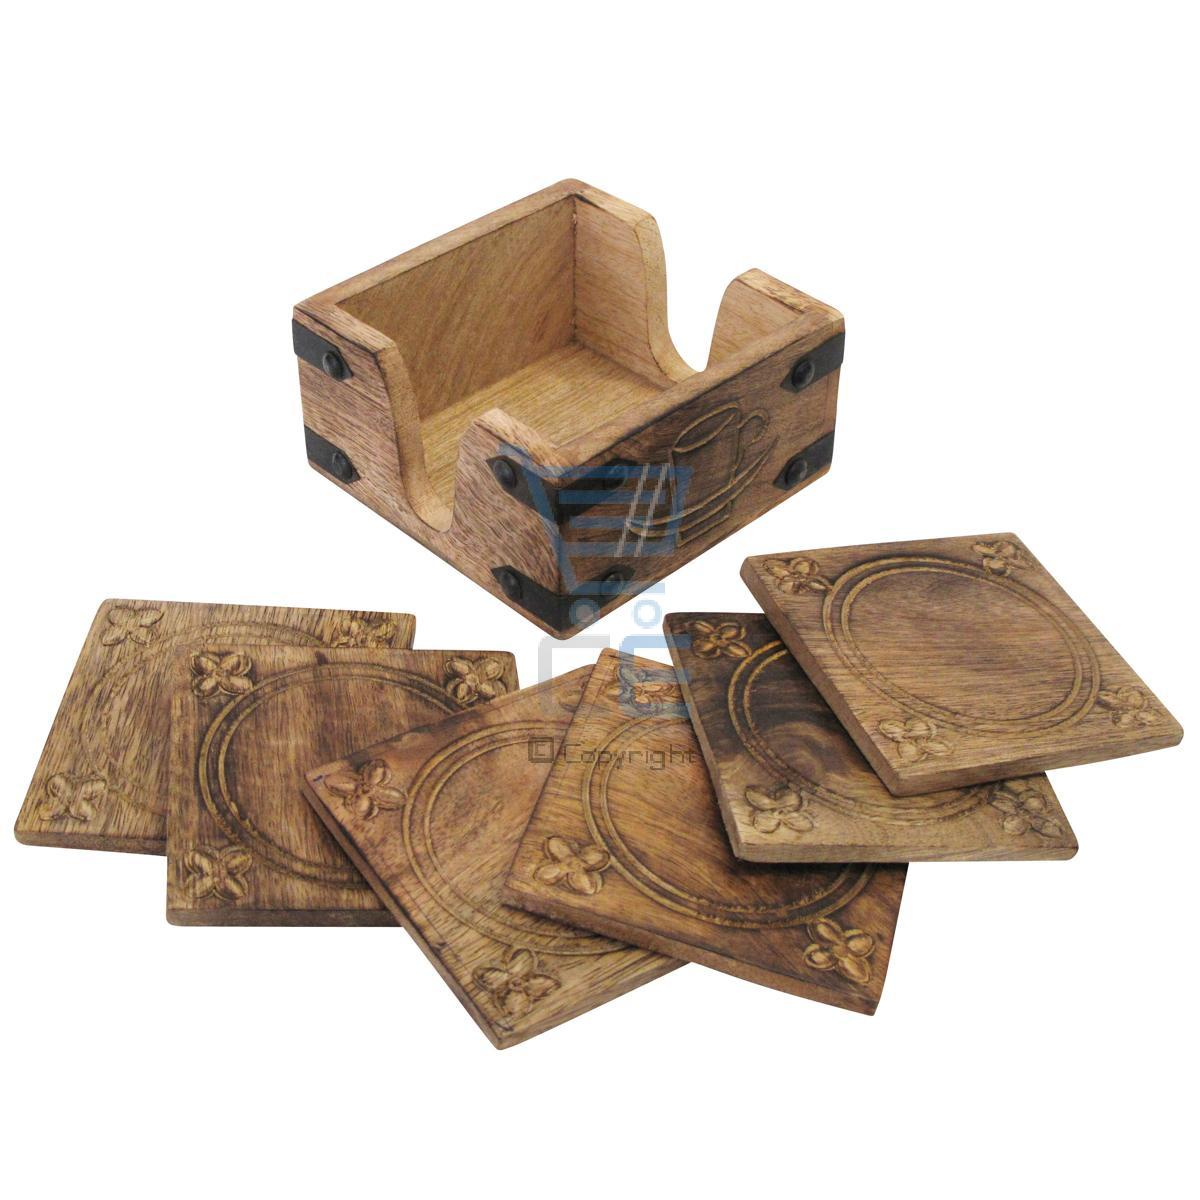 Wood Coaster Holder 6 Hand Carved Coasters And Holder Wooden Burnt Wood Style